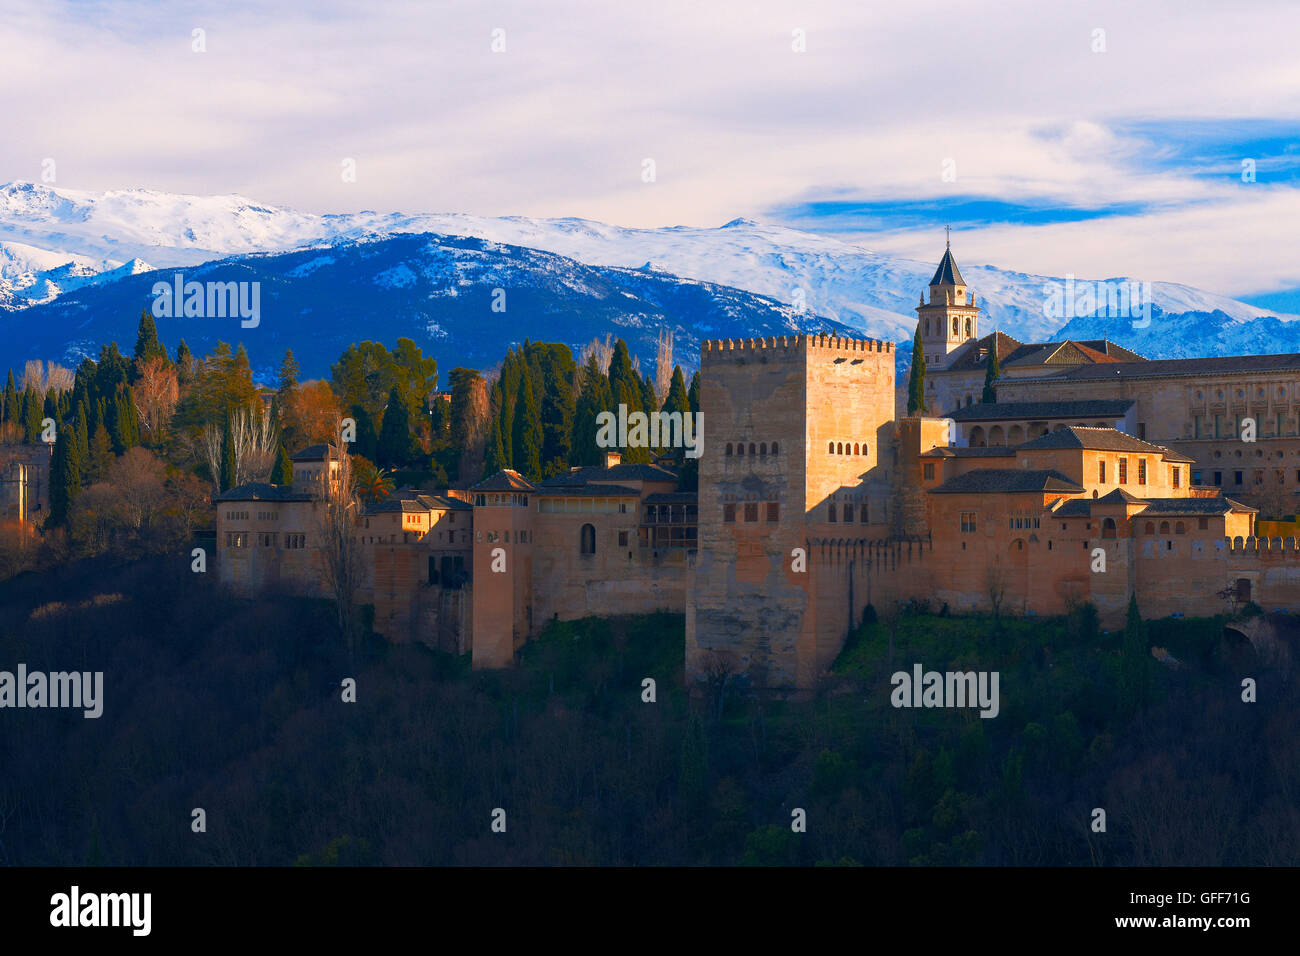 Alhambra, UNESCO World Heritage Site, Sierra Nevada and la Alhambra at Sunset, Granada, Andalusia, Spain. - Stock Image